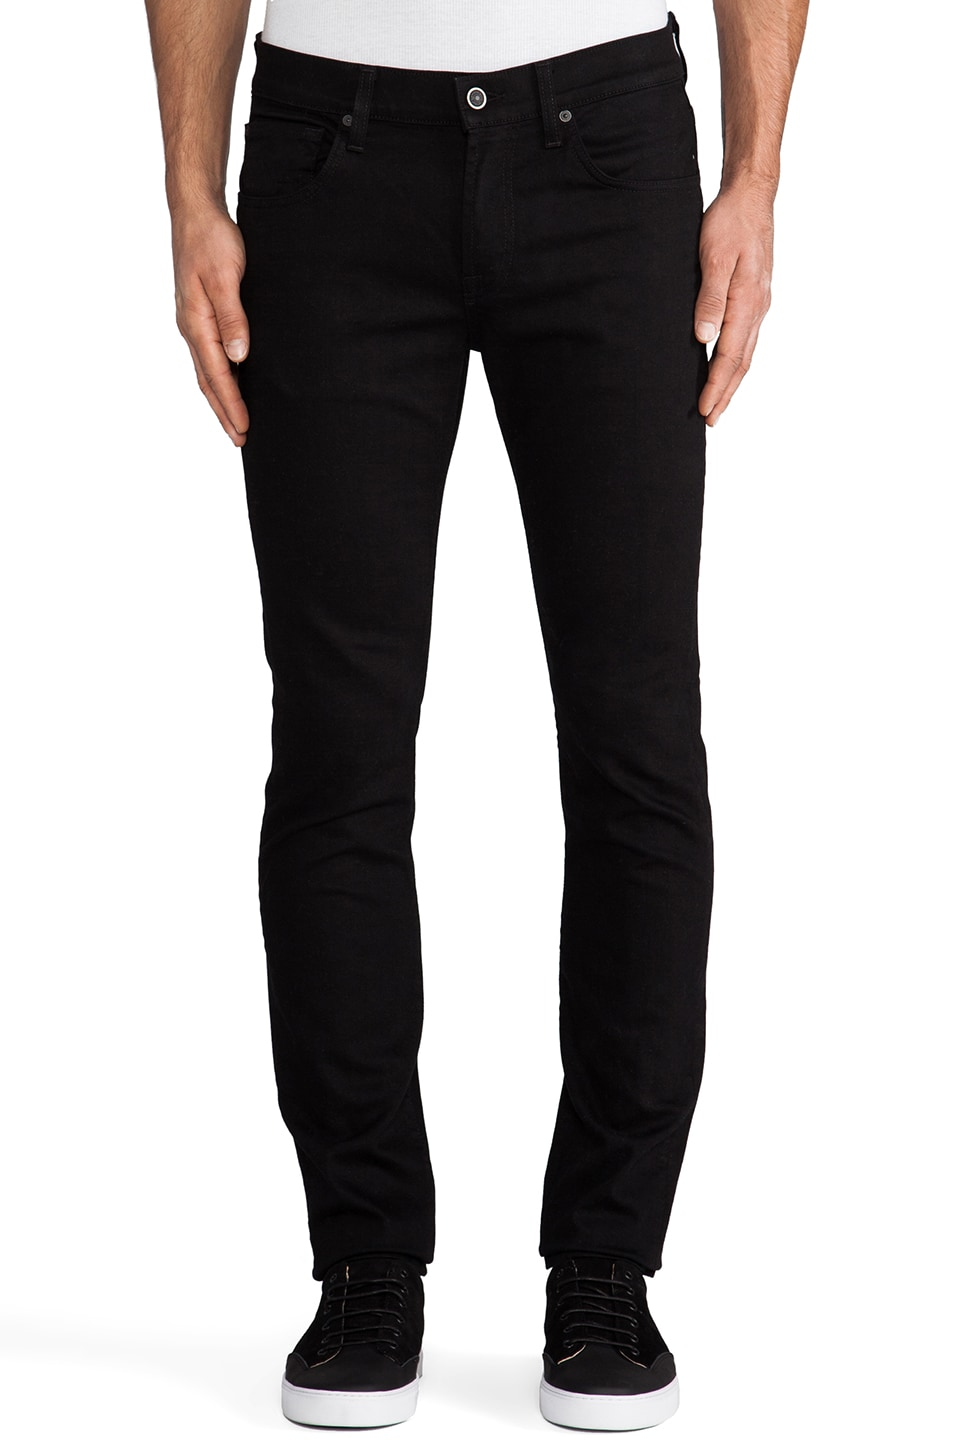 7 For All Mankind Paxtyn in Triple Black